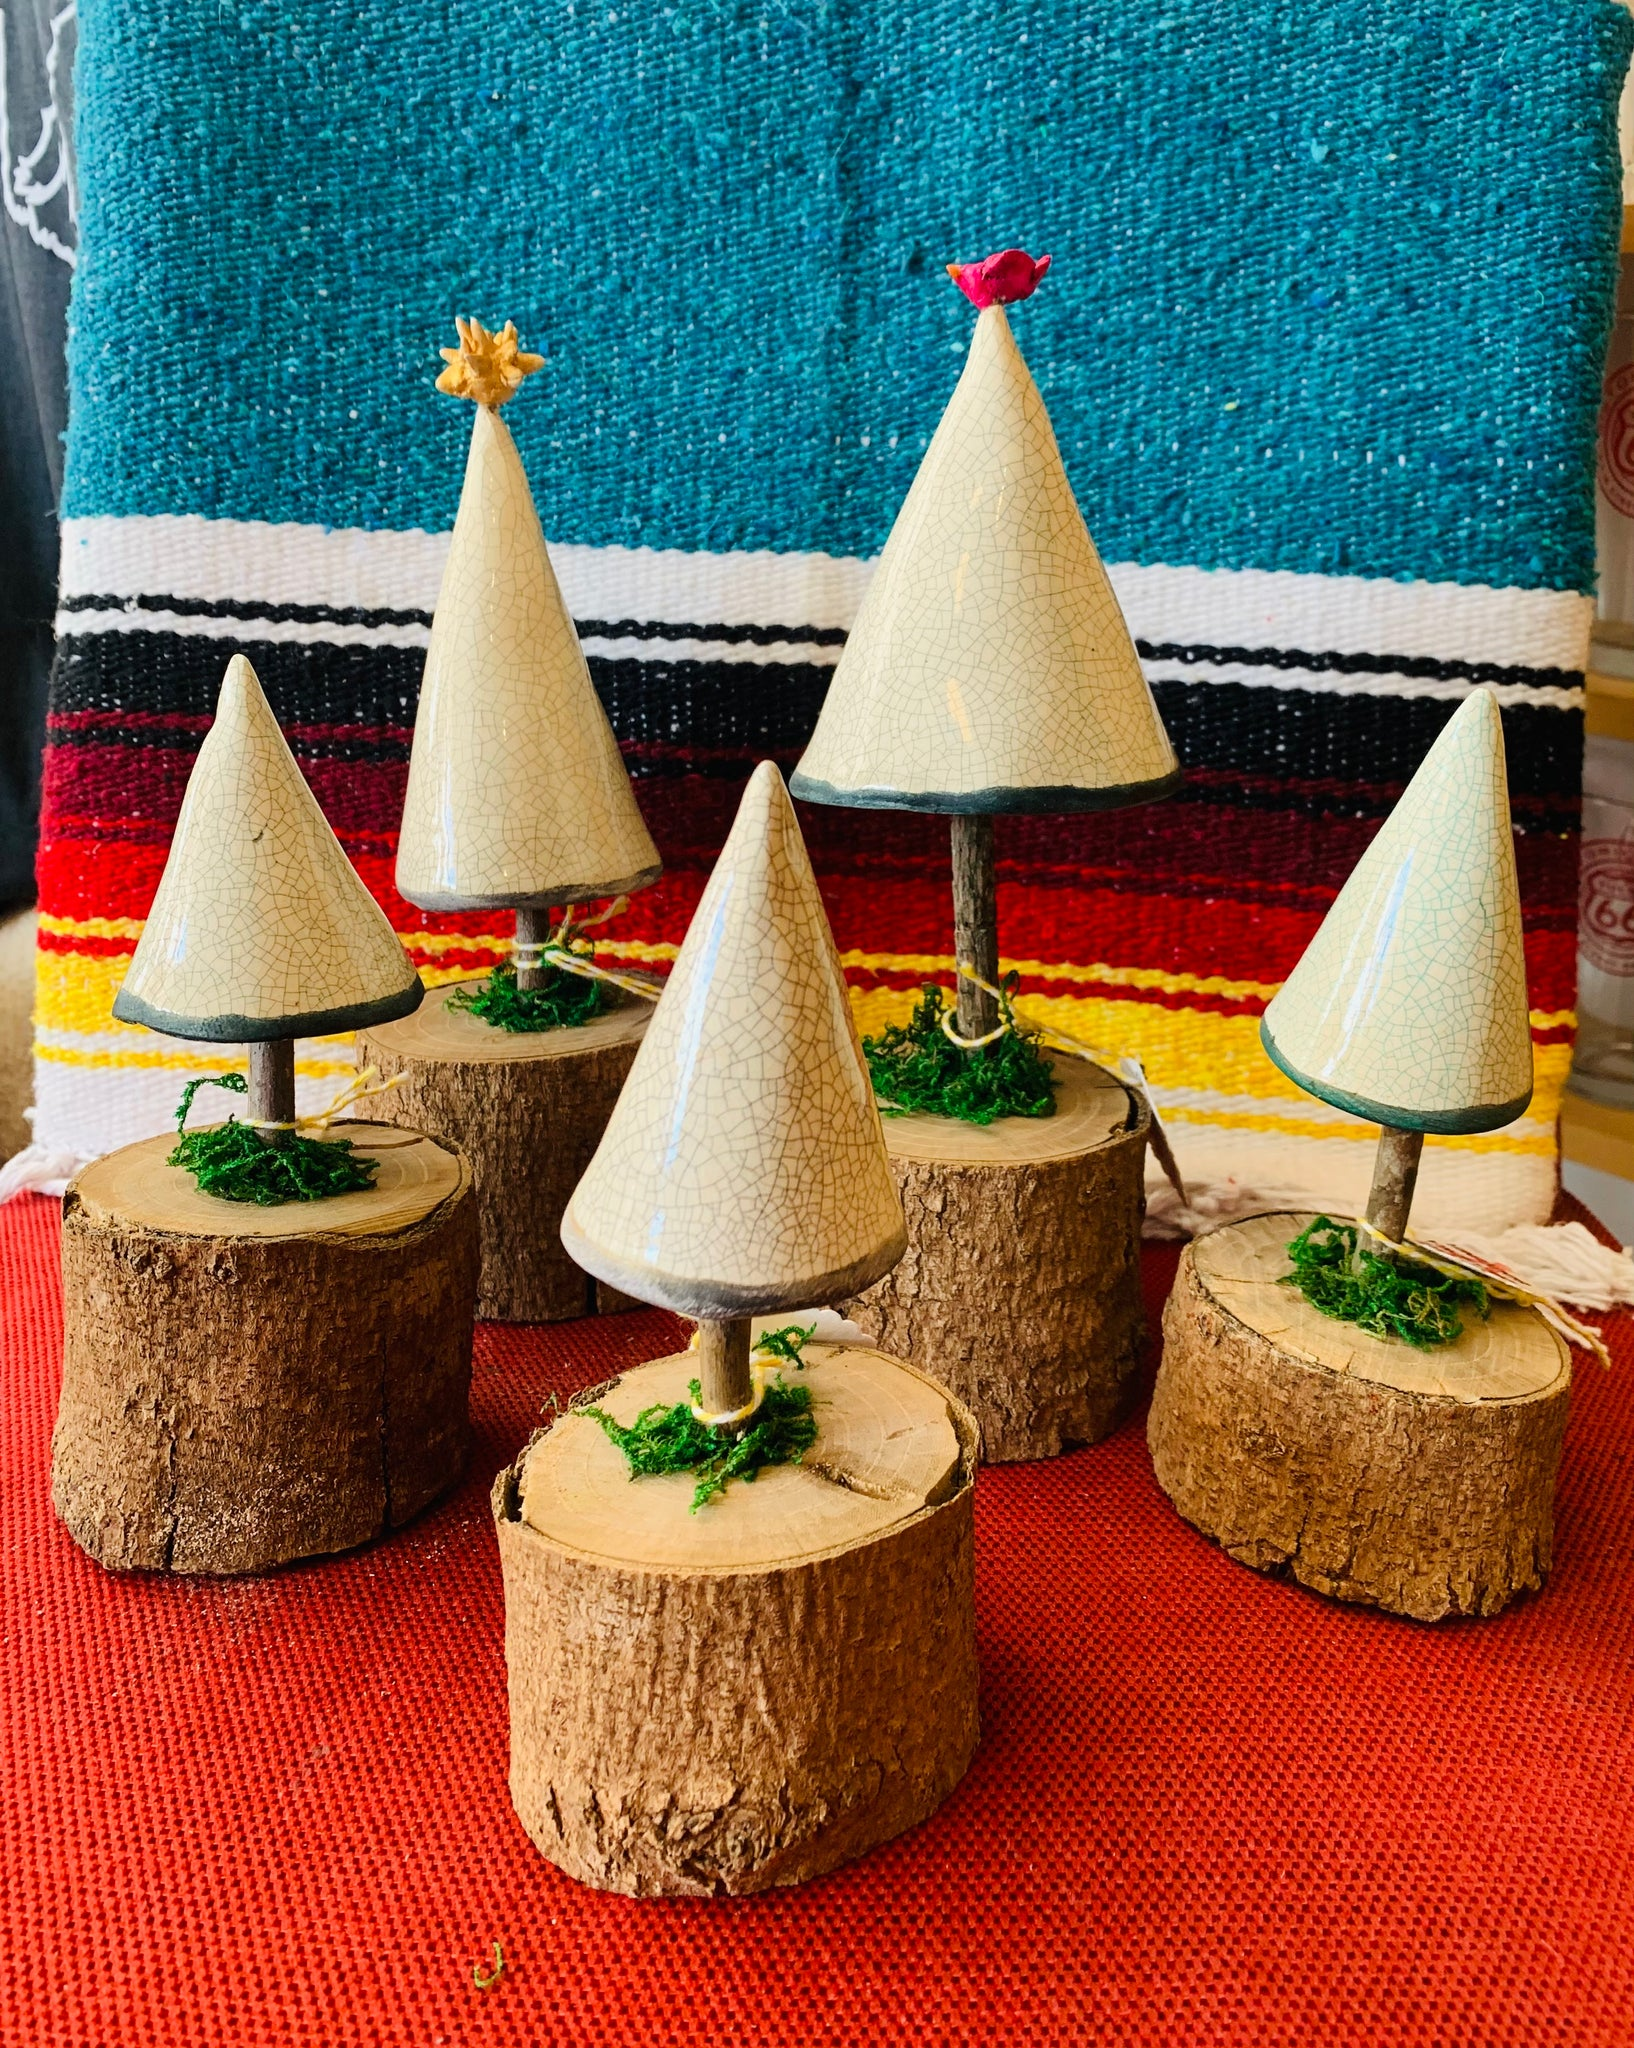 Tiny Trees on Wooden Base